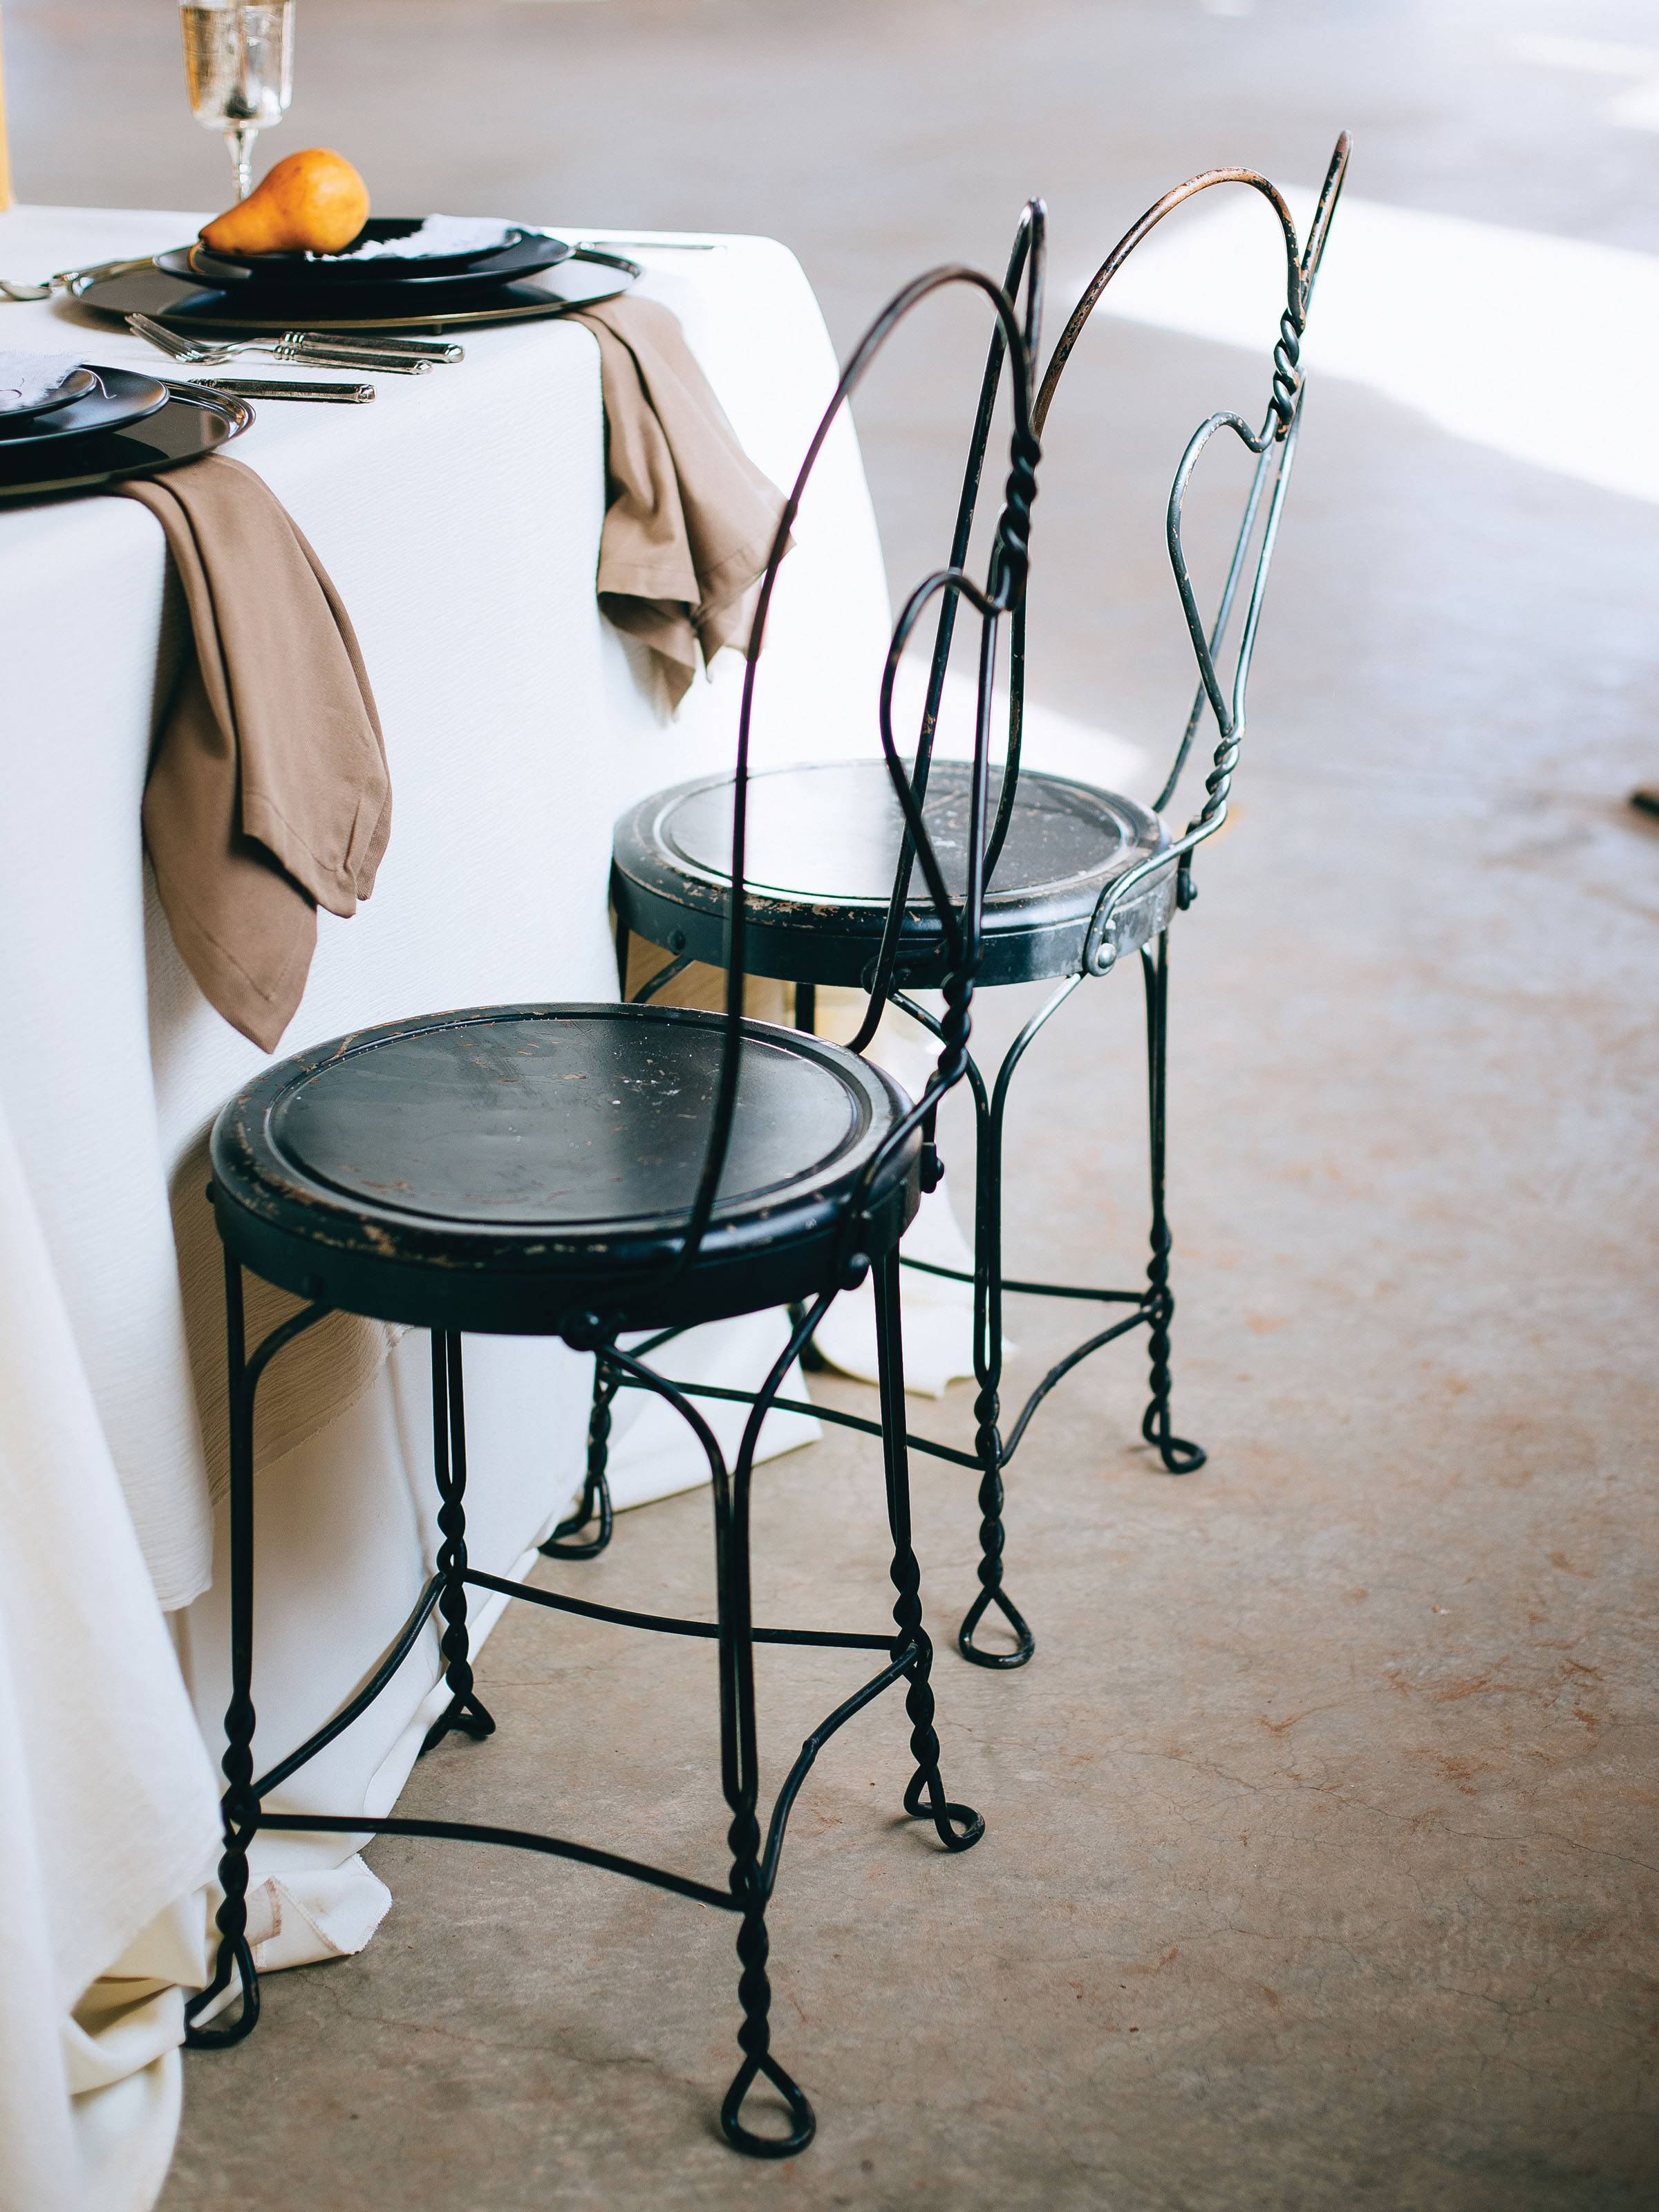 Black bistro chairs by a table draped in white linen with beige napkins and black plates